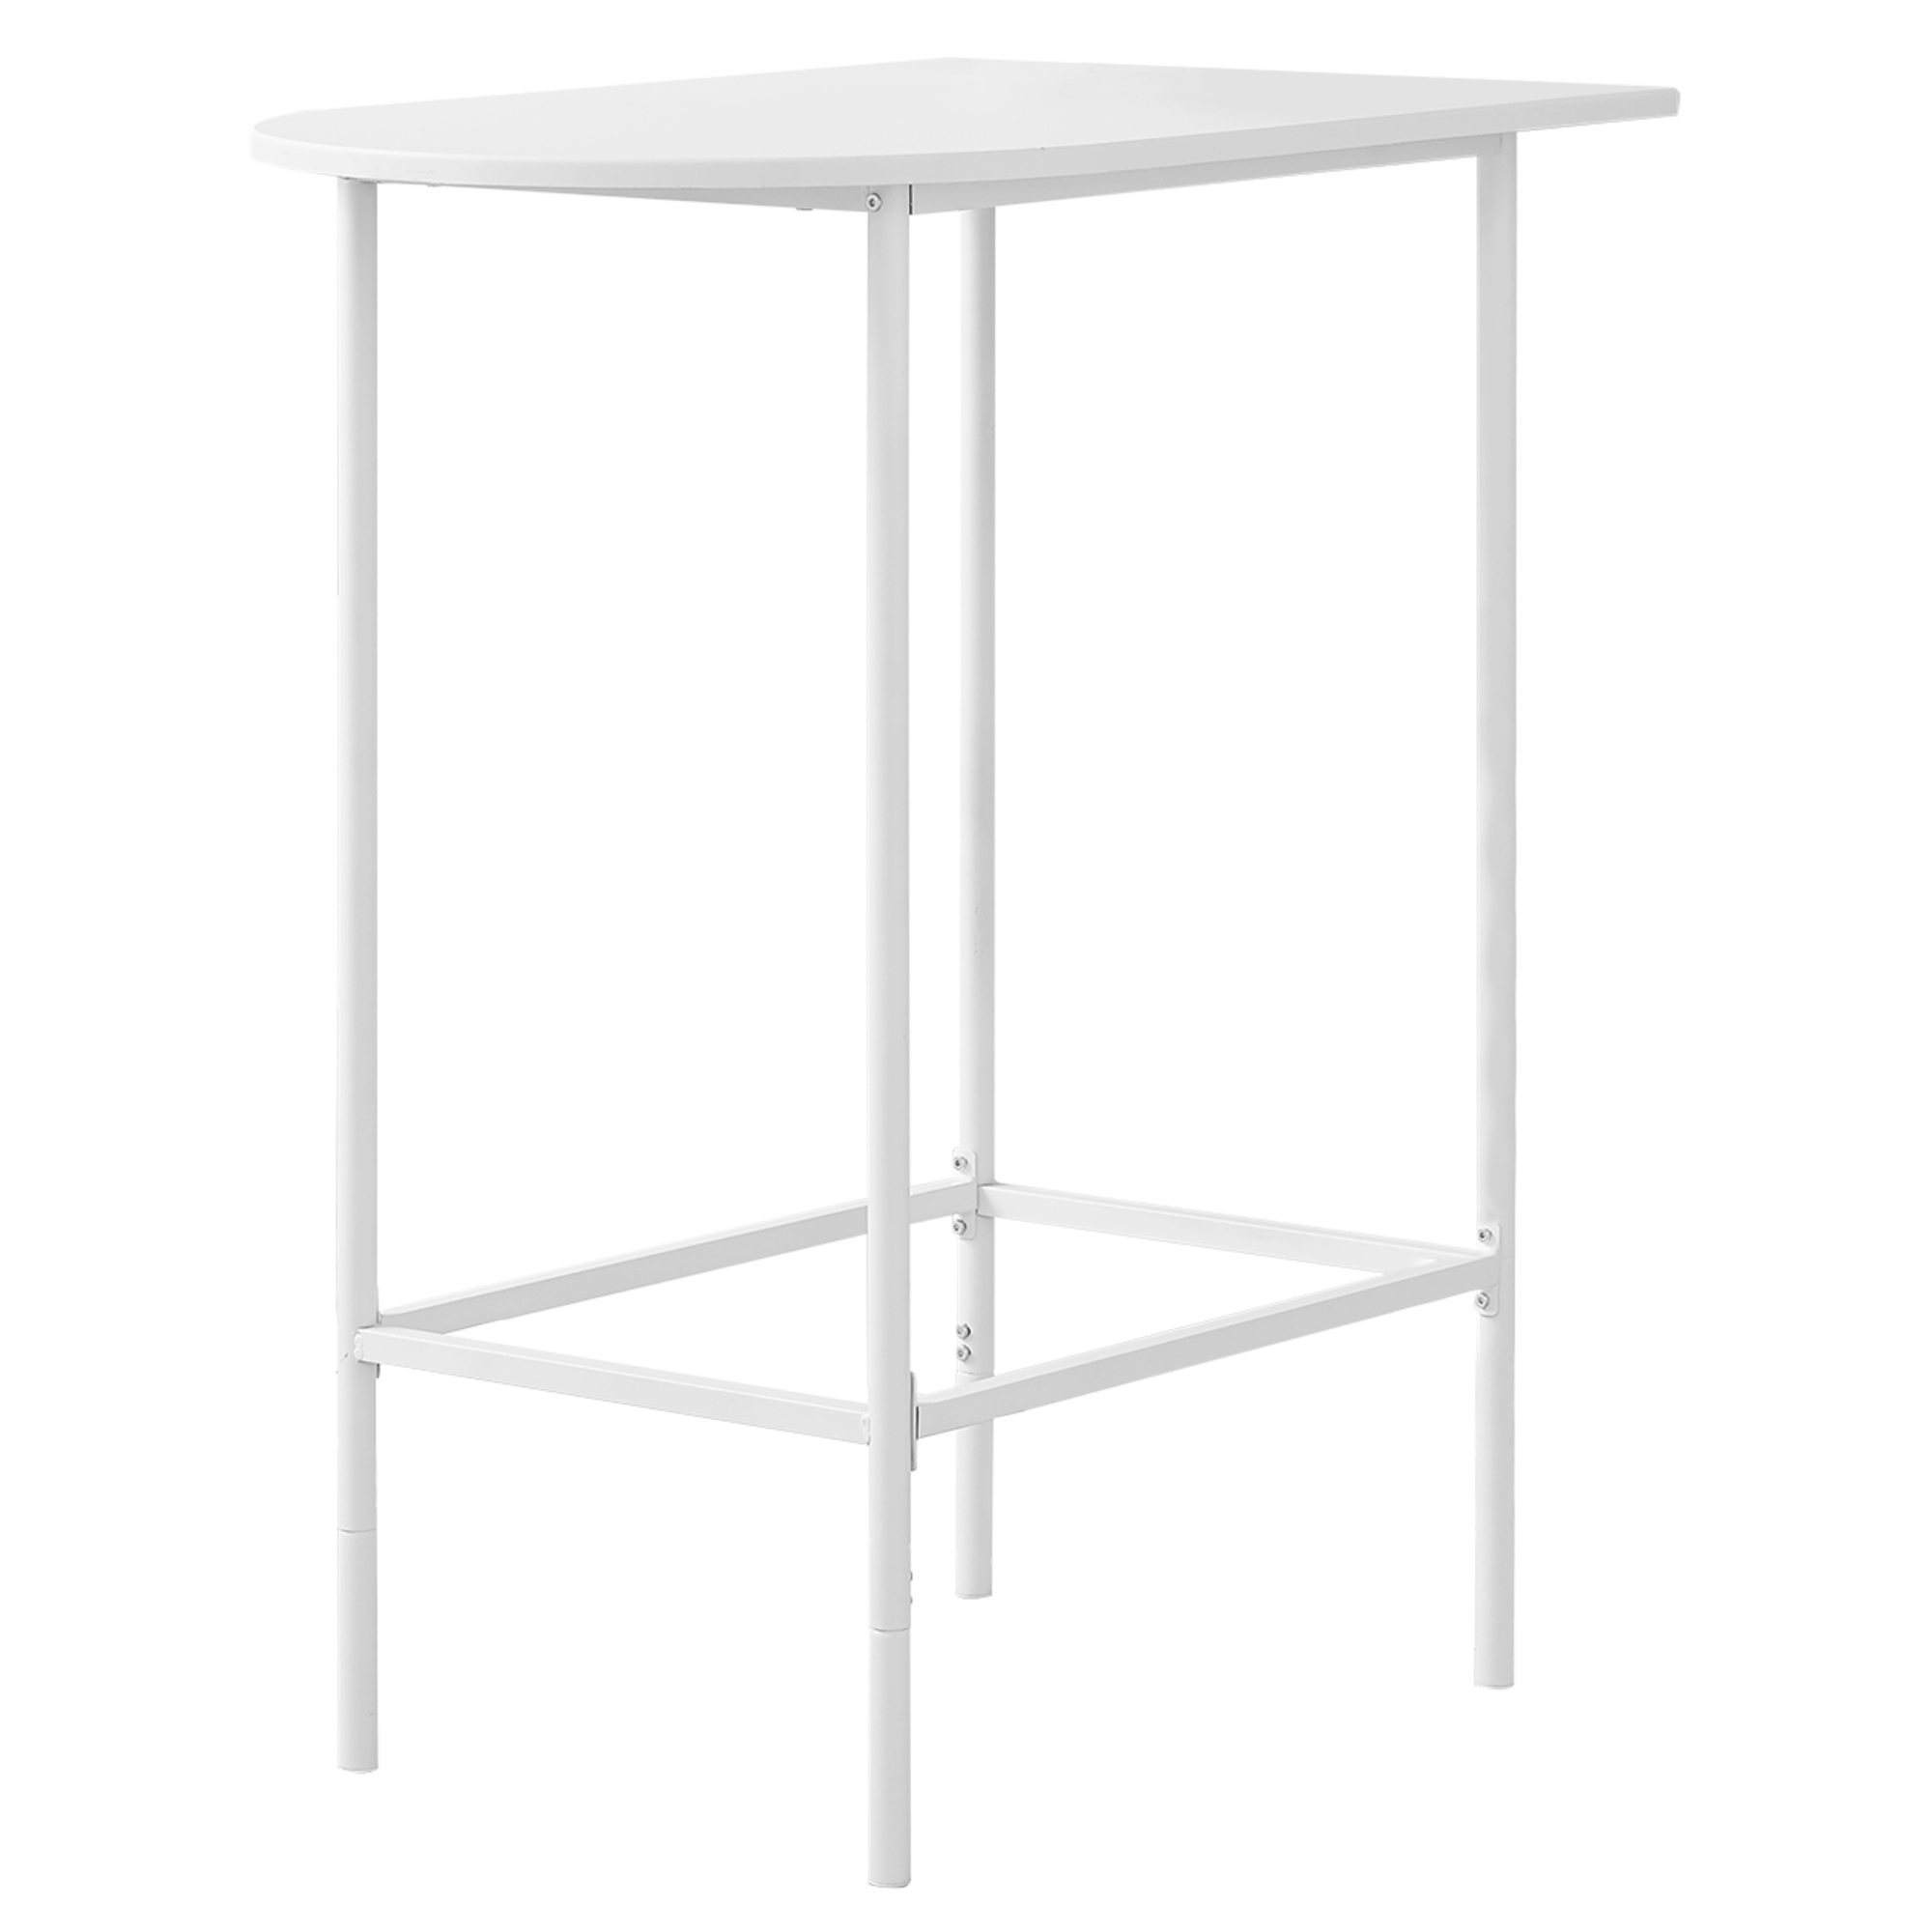 "HOME BAR - 24""X 36"" / WHITE TOP AND METAL SPACESAVER"